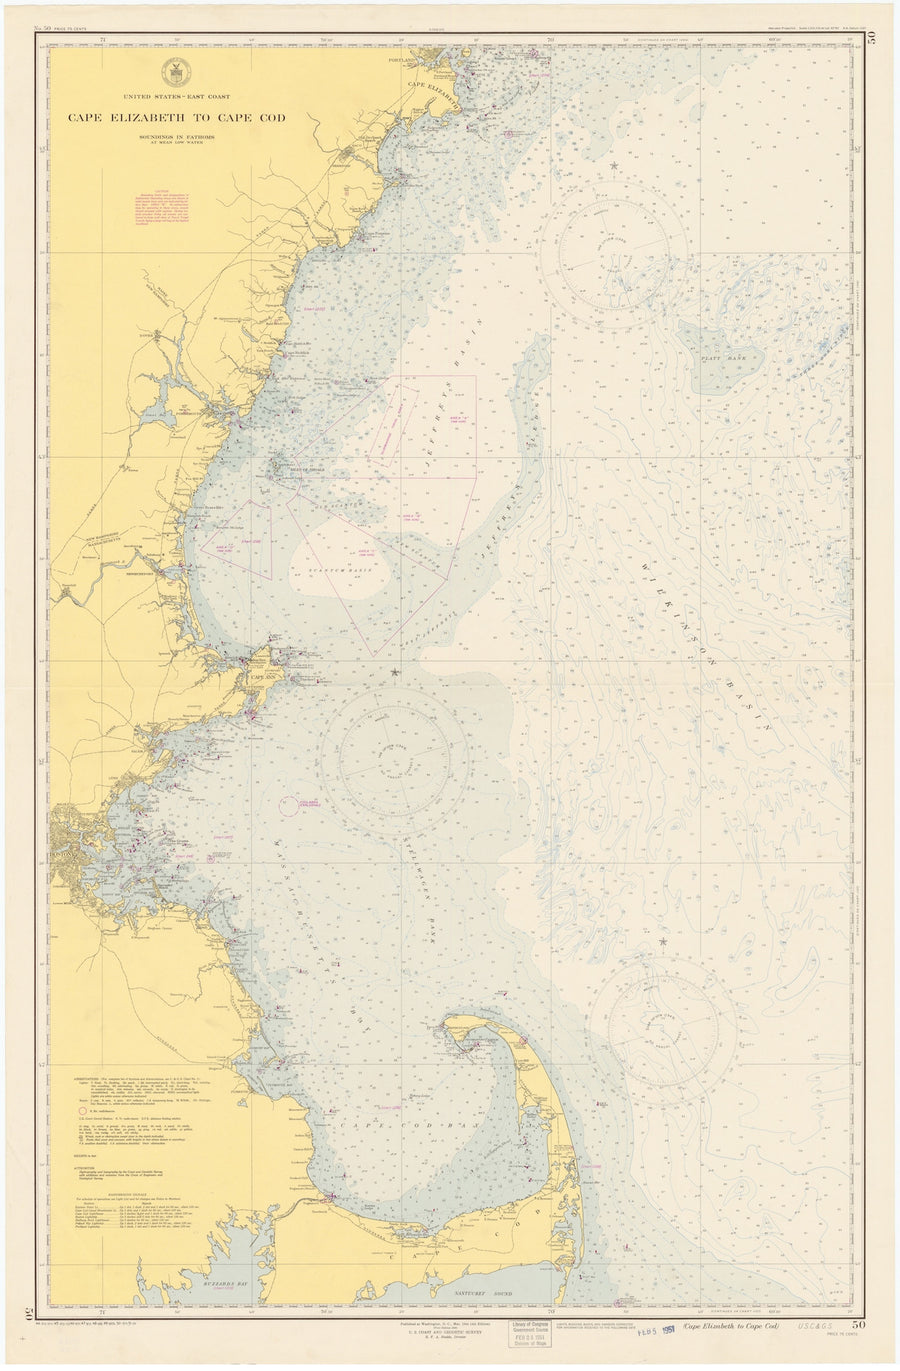 Cape Cod to Cape Elizabeth Map - 1951